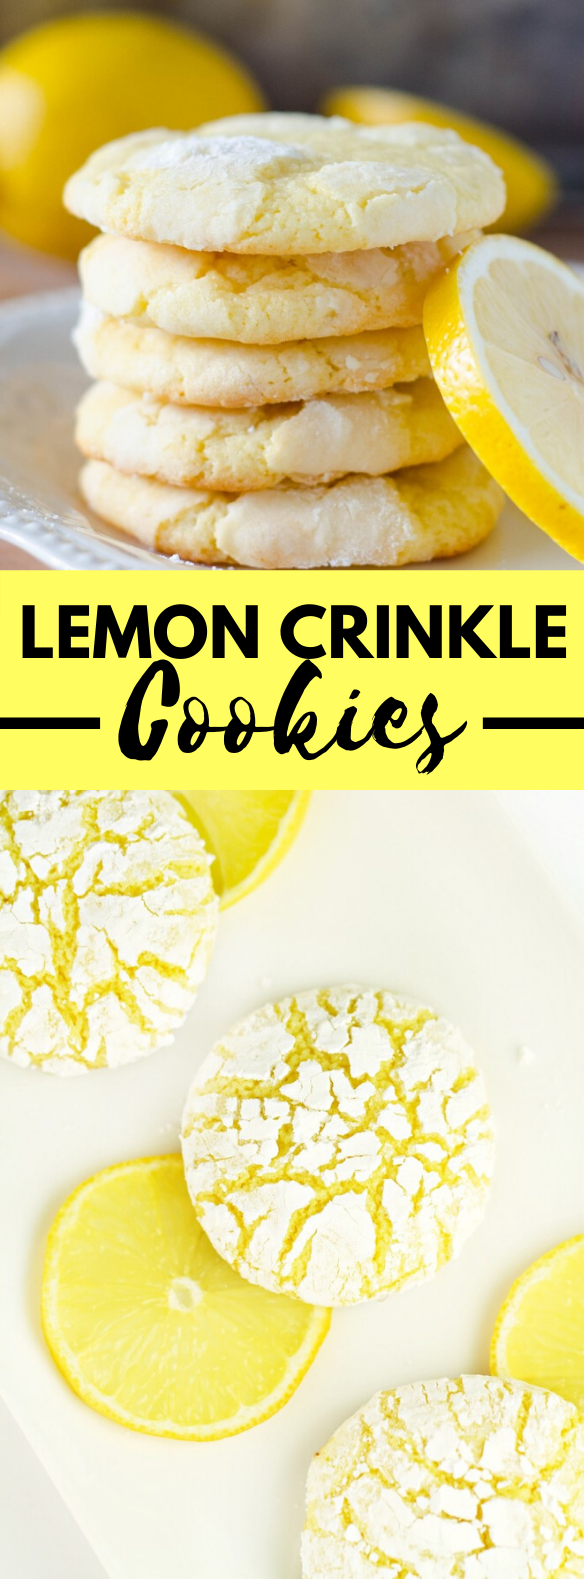 LEMON CRINKLE COOKIES #desserts #favouriterecipes